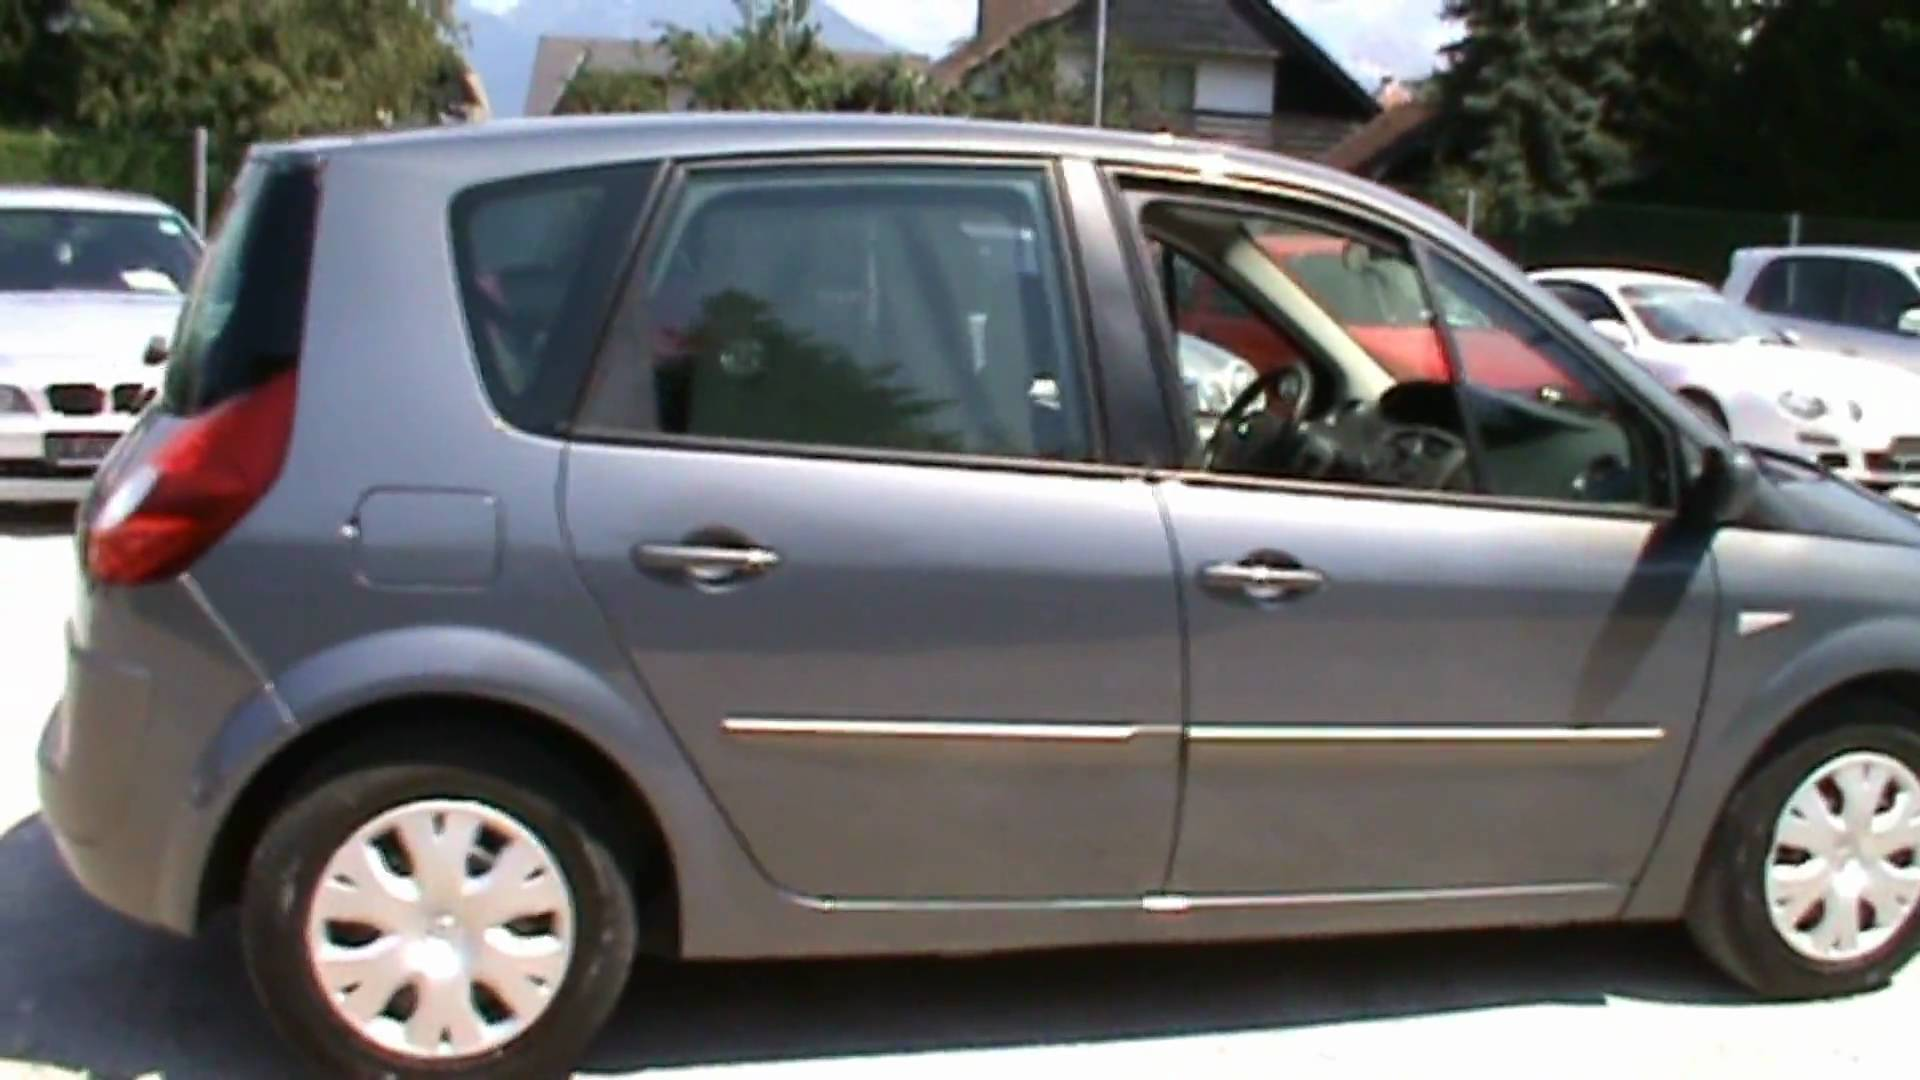 renault scenic 1 5 2007 technical specifications interior and exterior photo. Black Bedroom Furniture Sets. Home Design Ideas